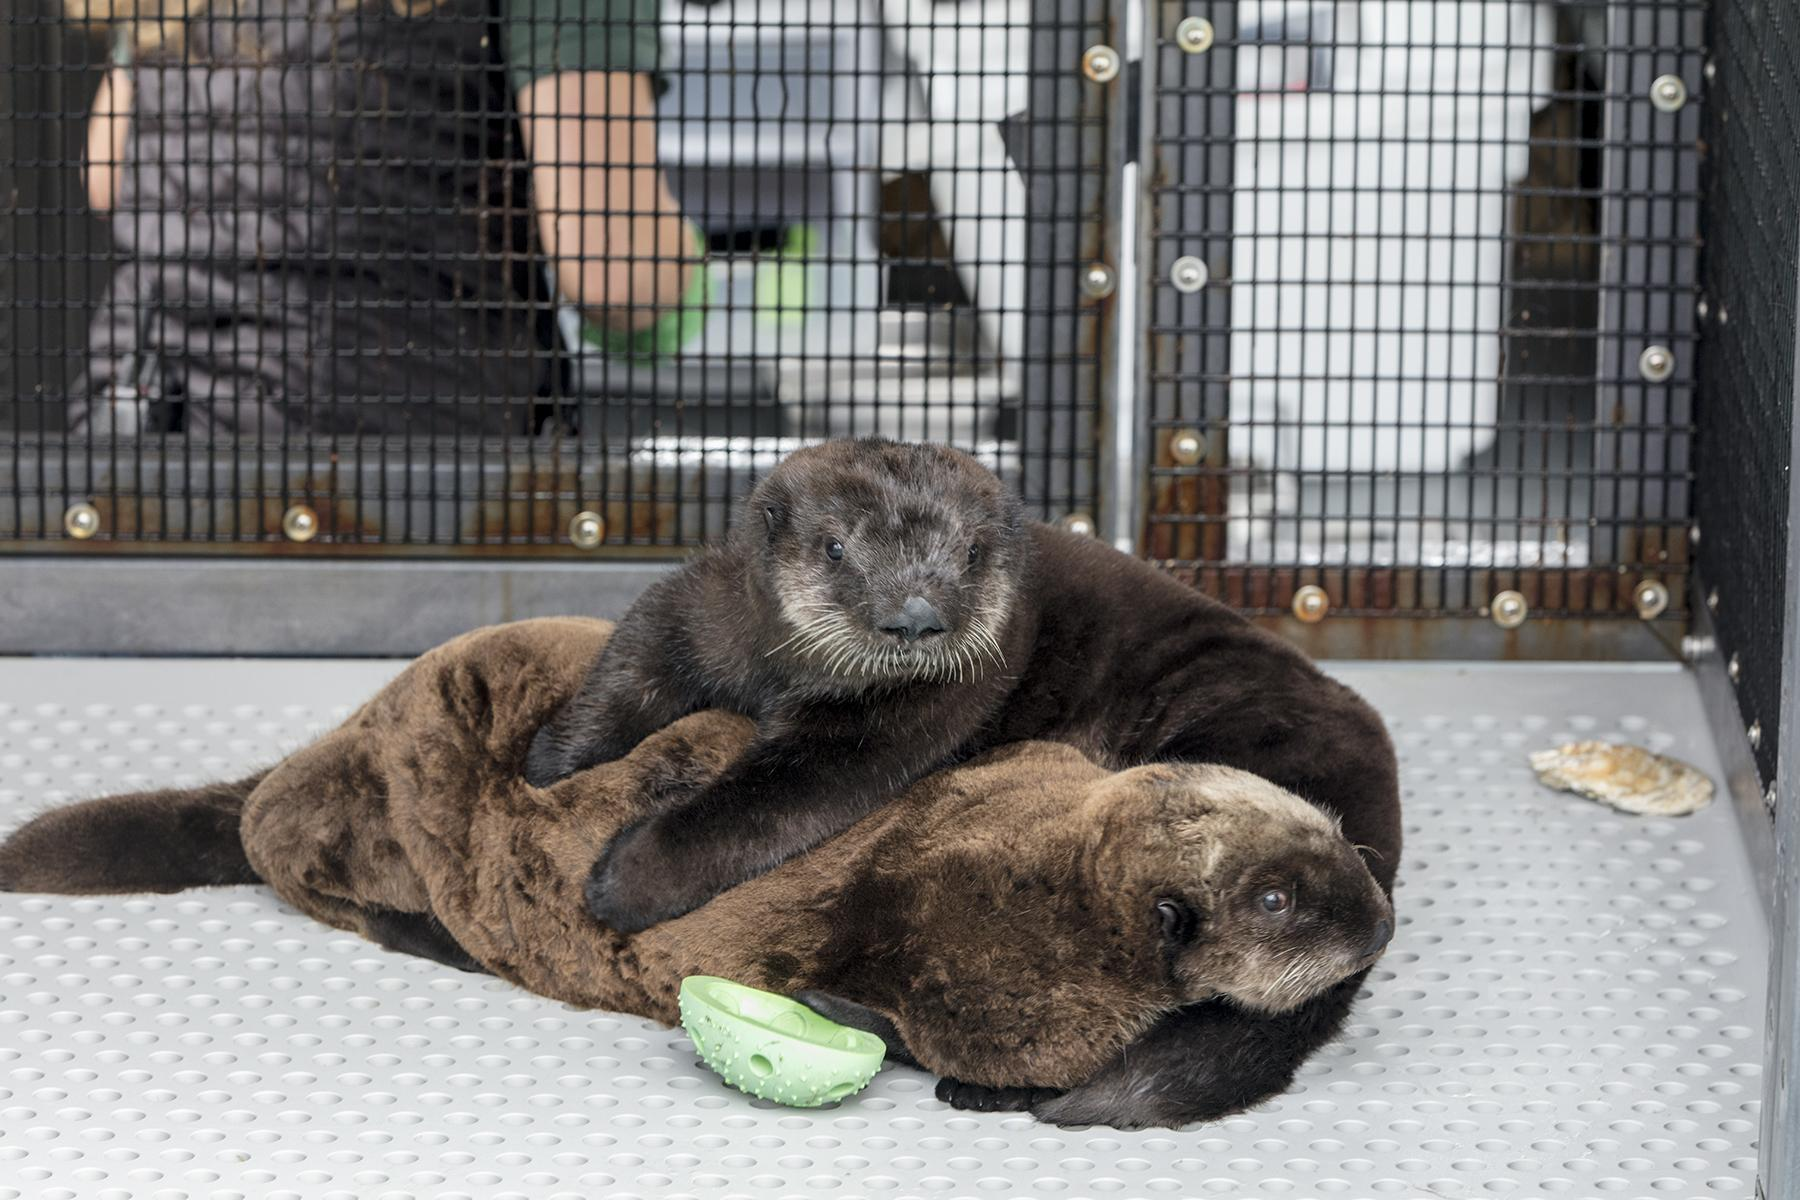 The newly arrived sea otter pups were deemed non-releasable by the U.S. Fish and Wildlife Service. (Brenna Hernandez / Shedd Aquarium)